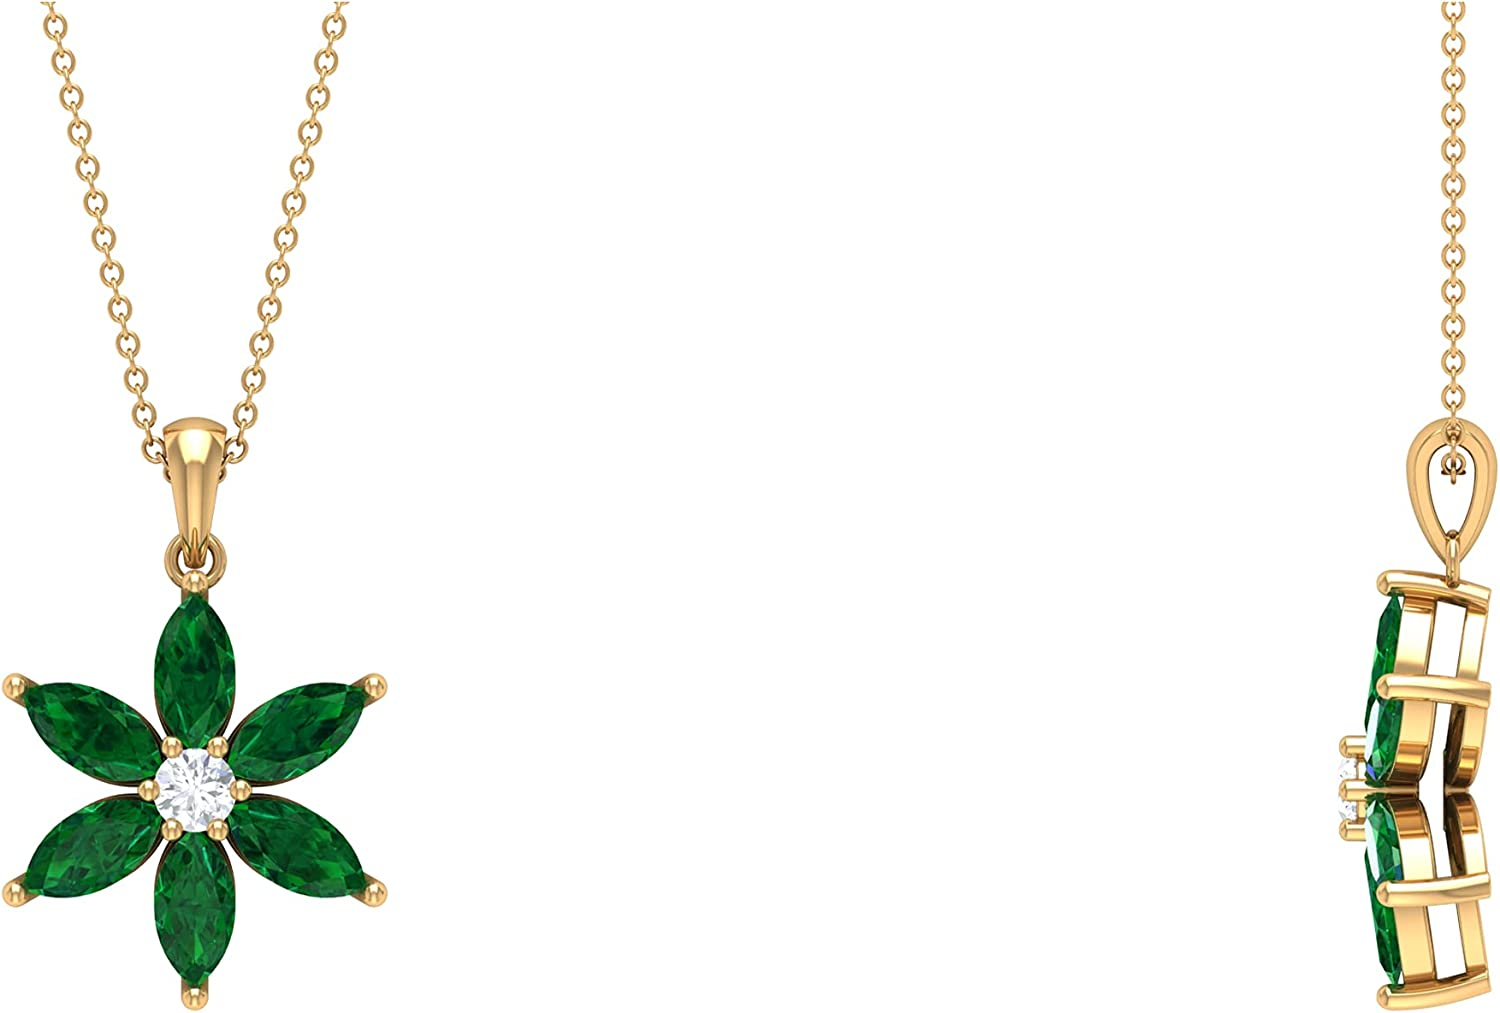 3 CT Marquise Cut Created Emerald with Moissanite Dainty Flower Pendant Necklace (AAAA Quality),14K Solid Gold,Moissanite